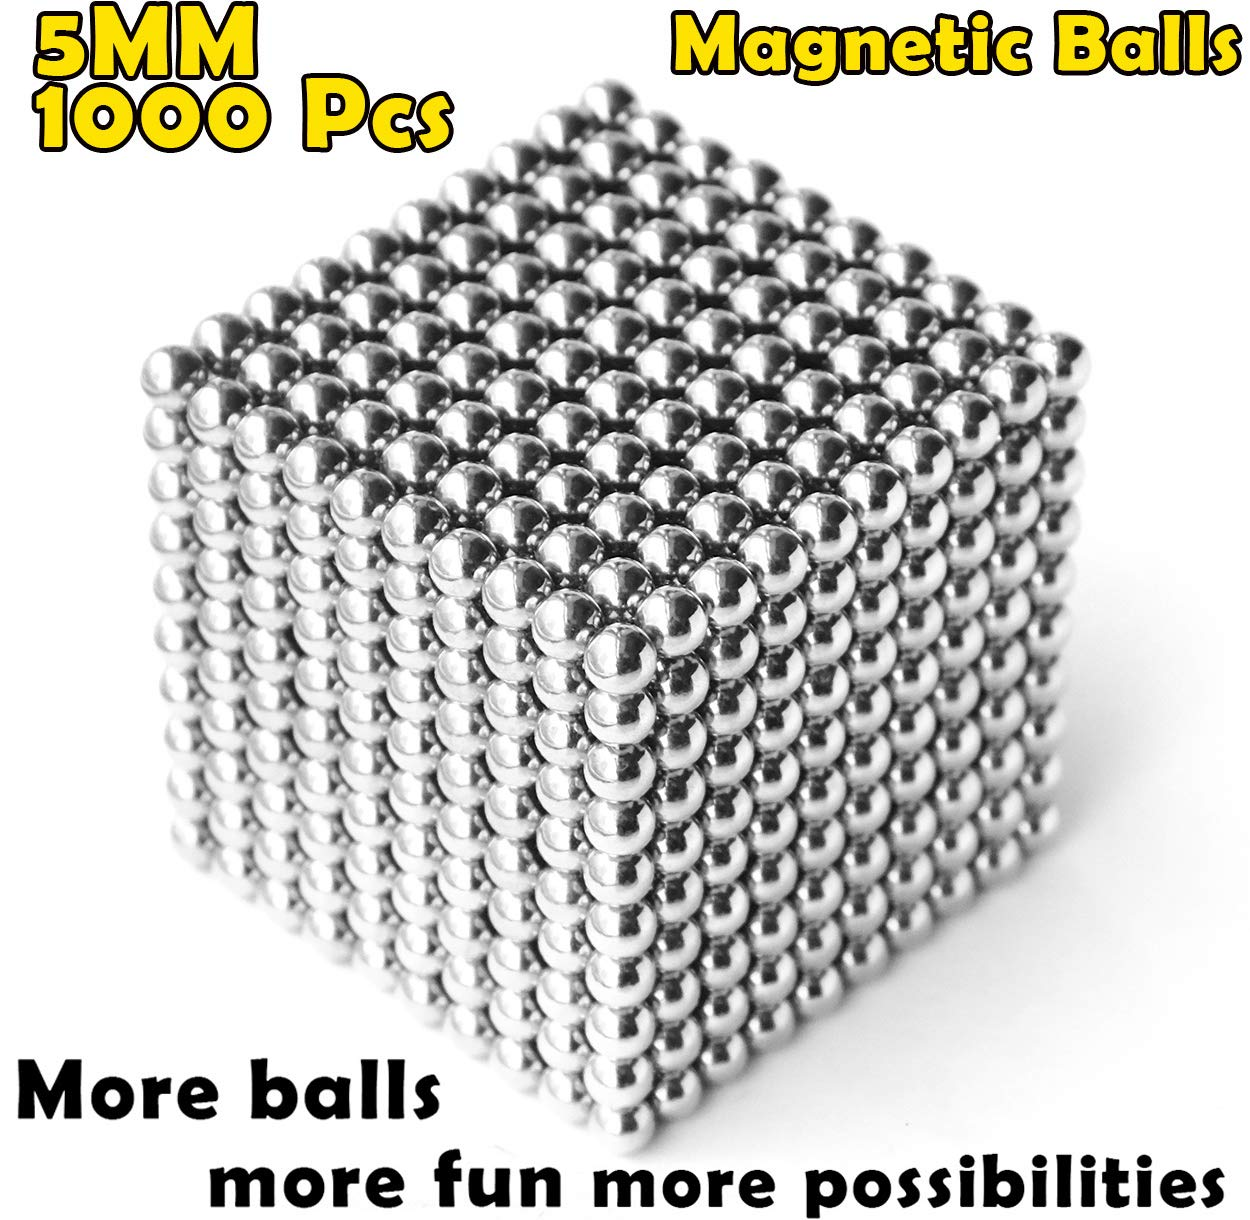 aBrilliantLife 5MM 1000 Pieces Magnetic Balls Toys Sculpture Building Magnetic Blocks Magnets Cube Gift for Intellectual Development -Office Toy Stress Relief Gifts for Teens and Adult-Sliver by aBrilliantLife (Image #1)